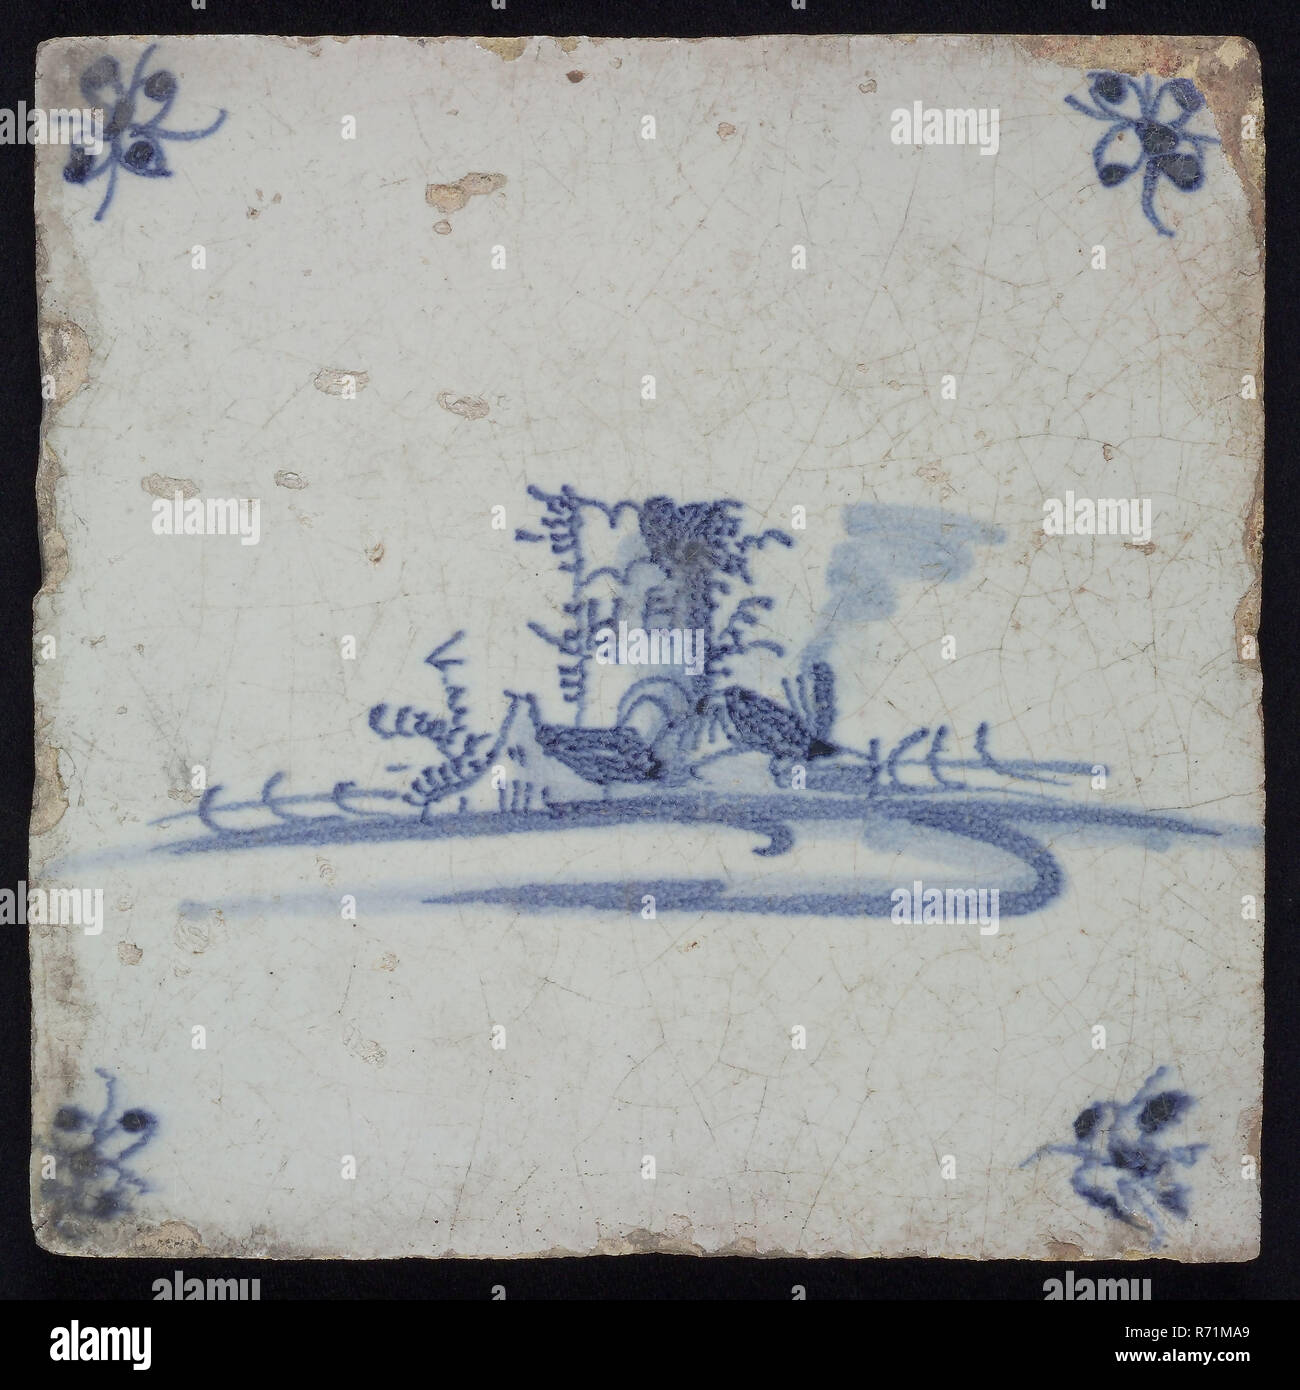 Tile, landscape with ruin or tower, blue decor on white ground, corner fill spider, wall tile tile sculpture ceramic earthenware glaze tin glaze, in form made baked glazed painted baked Wall tile with blue decor on white background Central representation of ruin or tower in stylized polder landscape. Yellow shard Slightly slanted sides of indigenous pottery - Stock Image